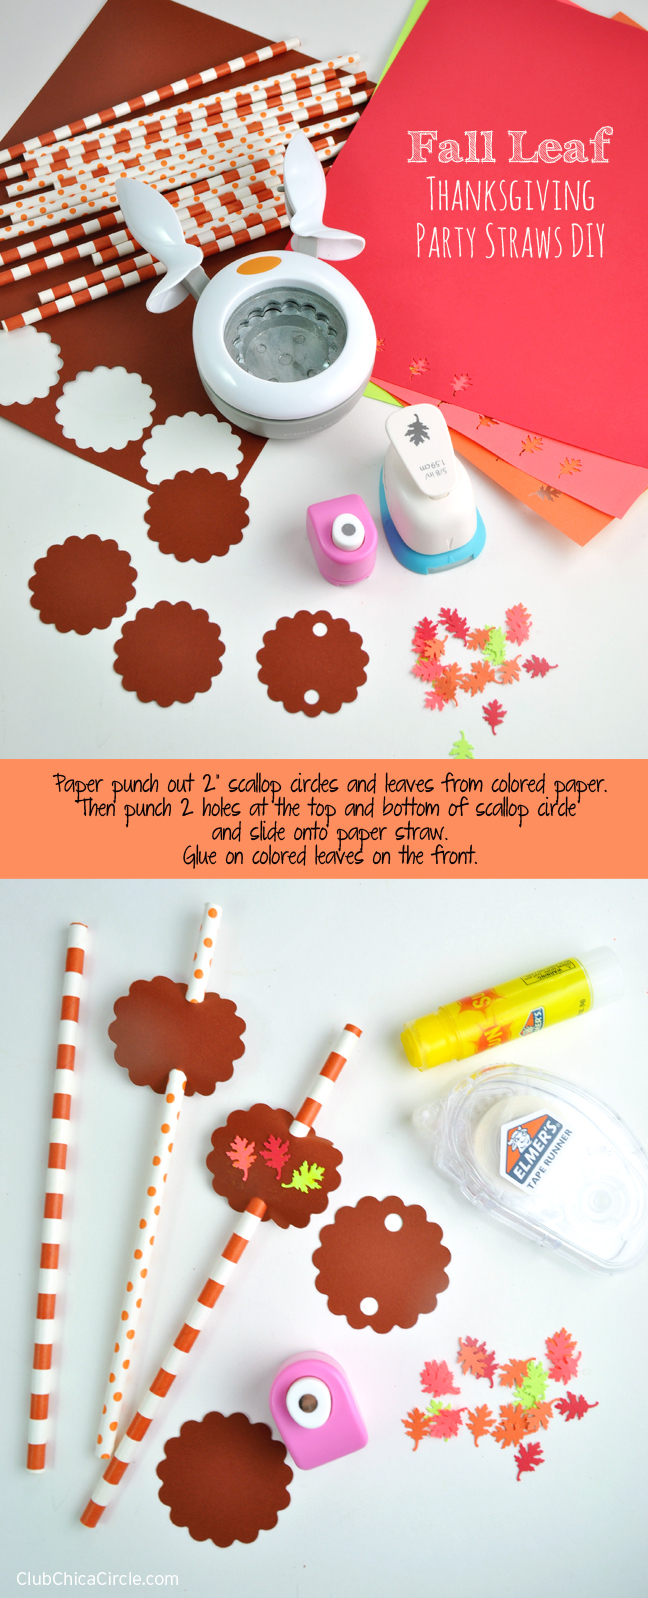 How to Make Fall Leaf Paper Party Straws for Thanksgiving